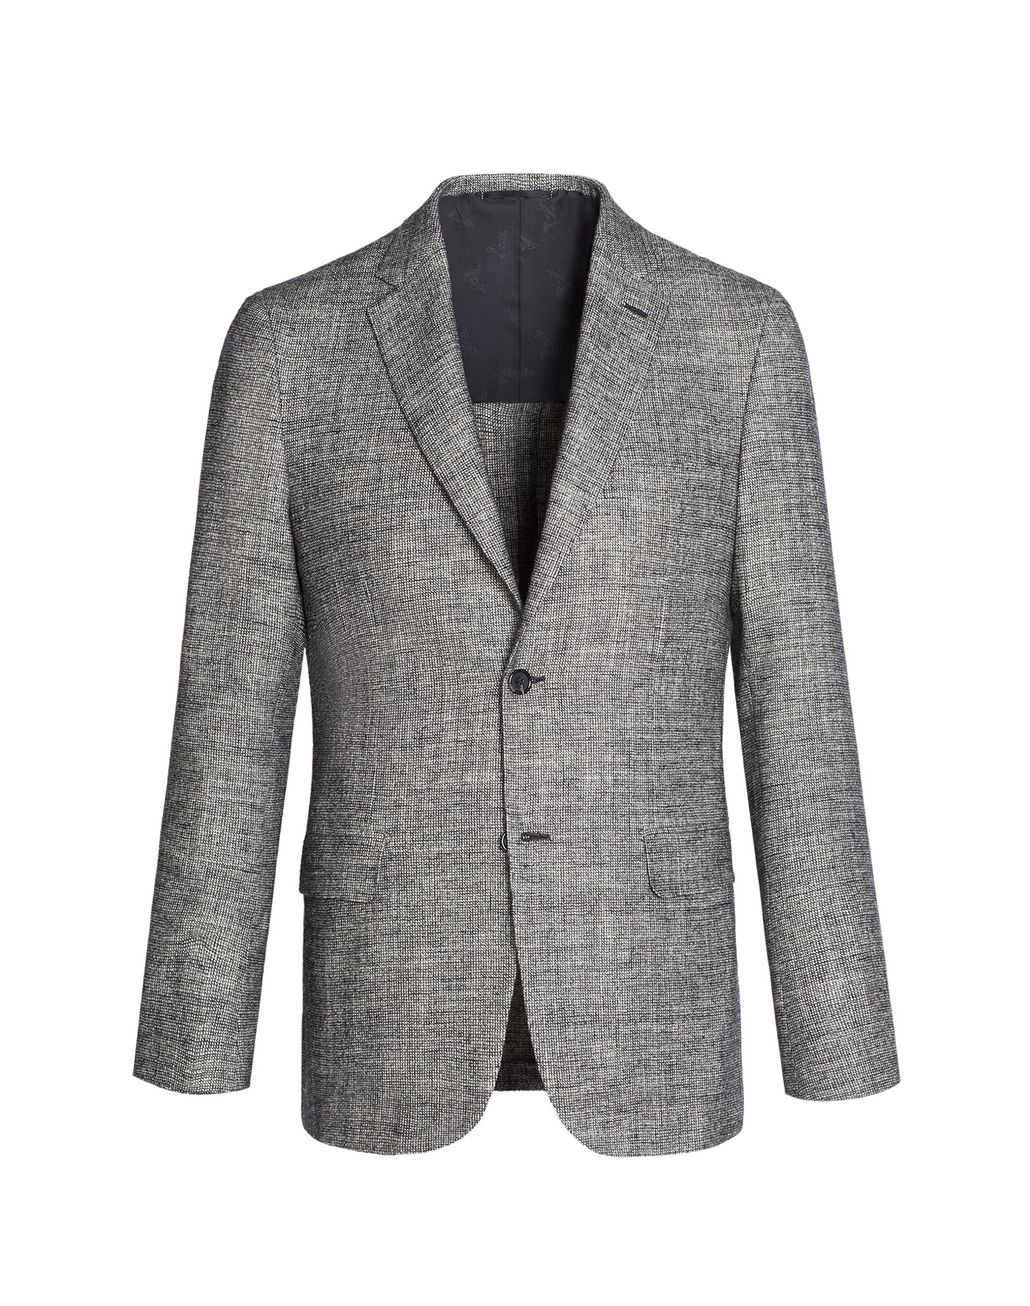 BRIONI Grey and White Ravello Jacket Jackets Man f